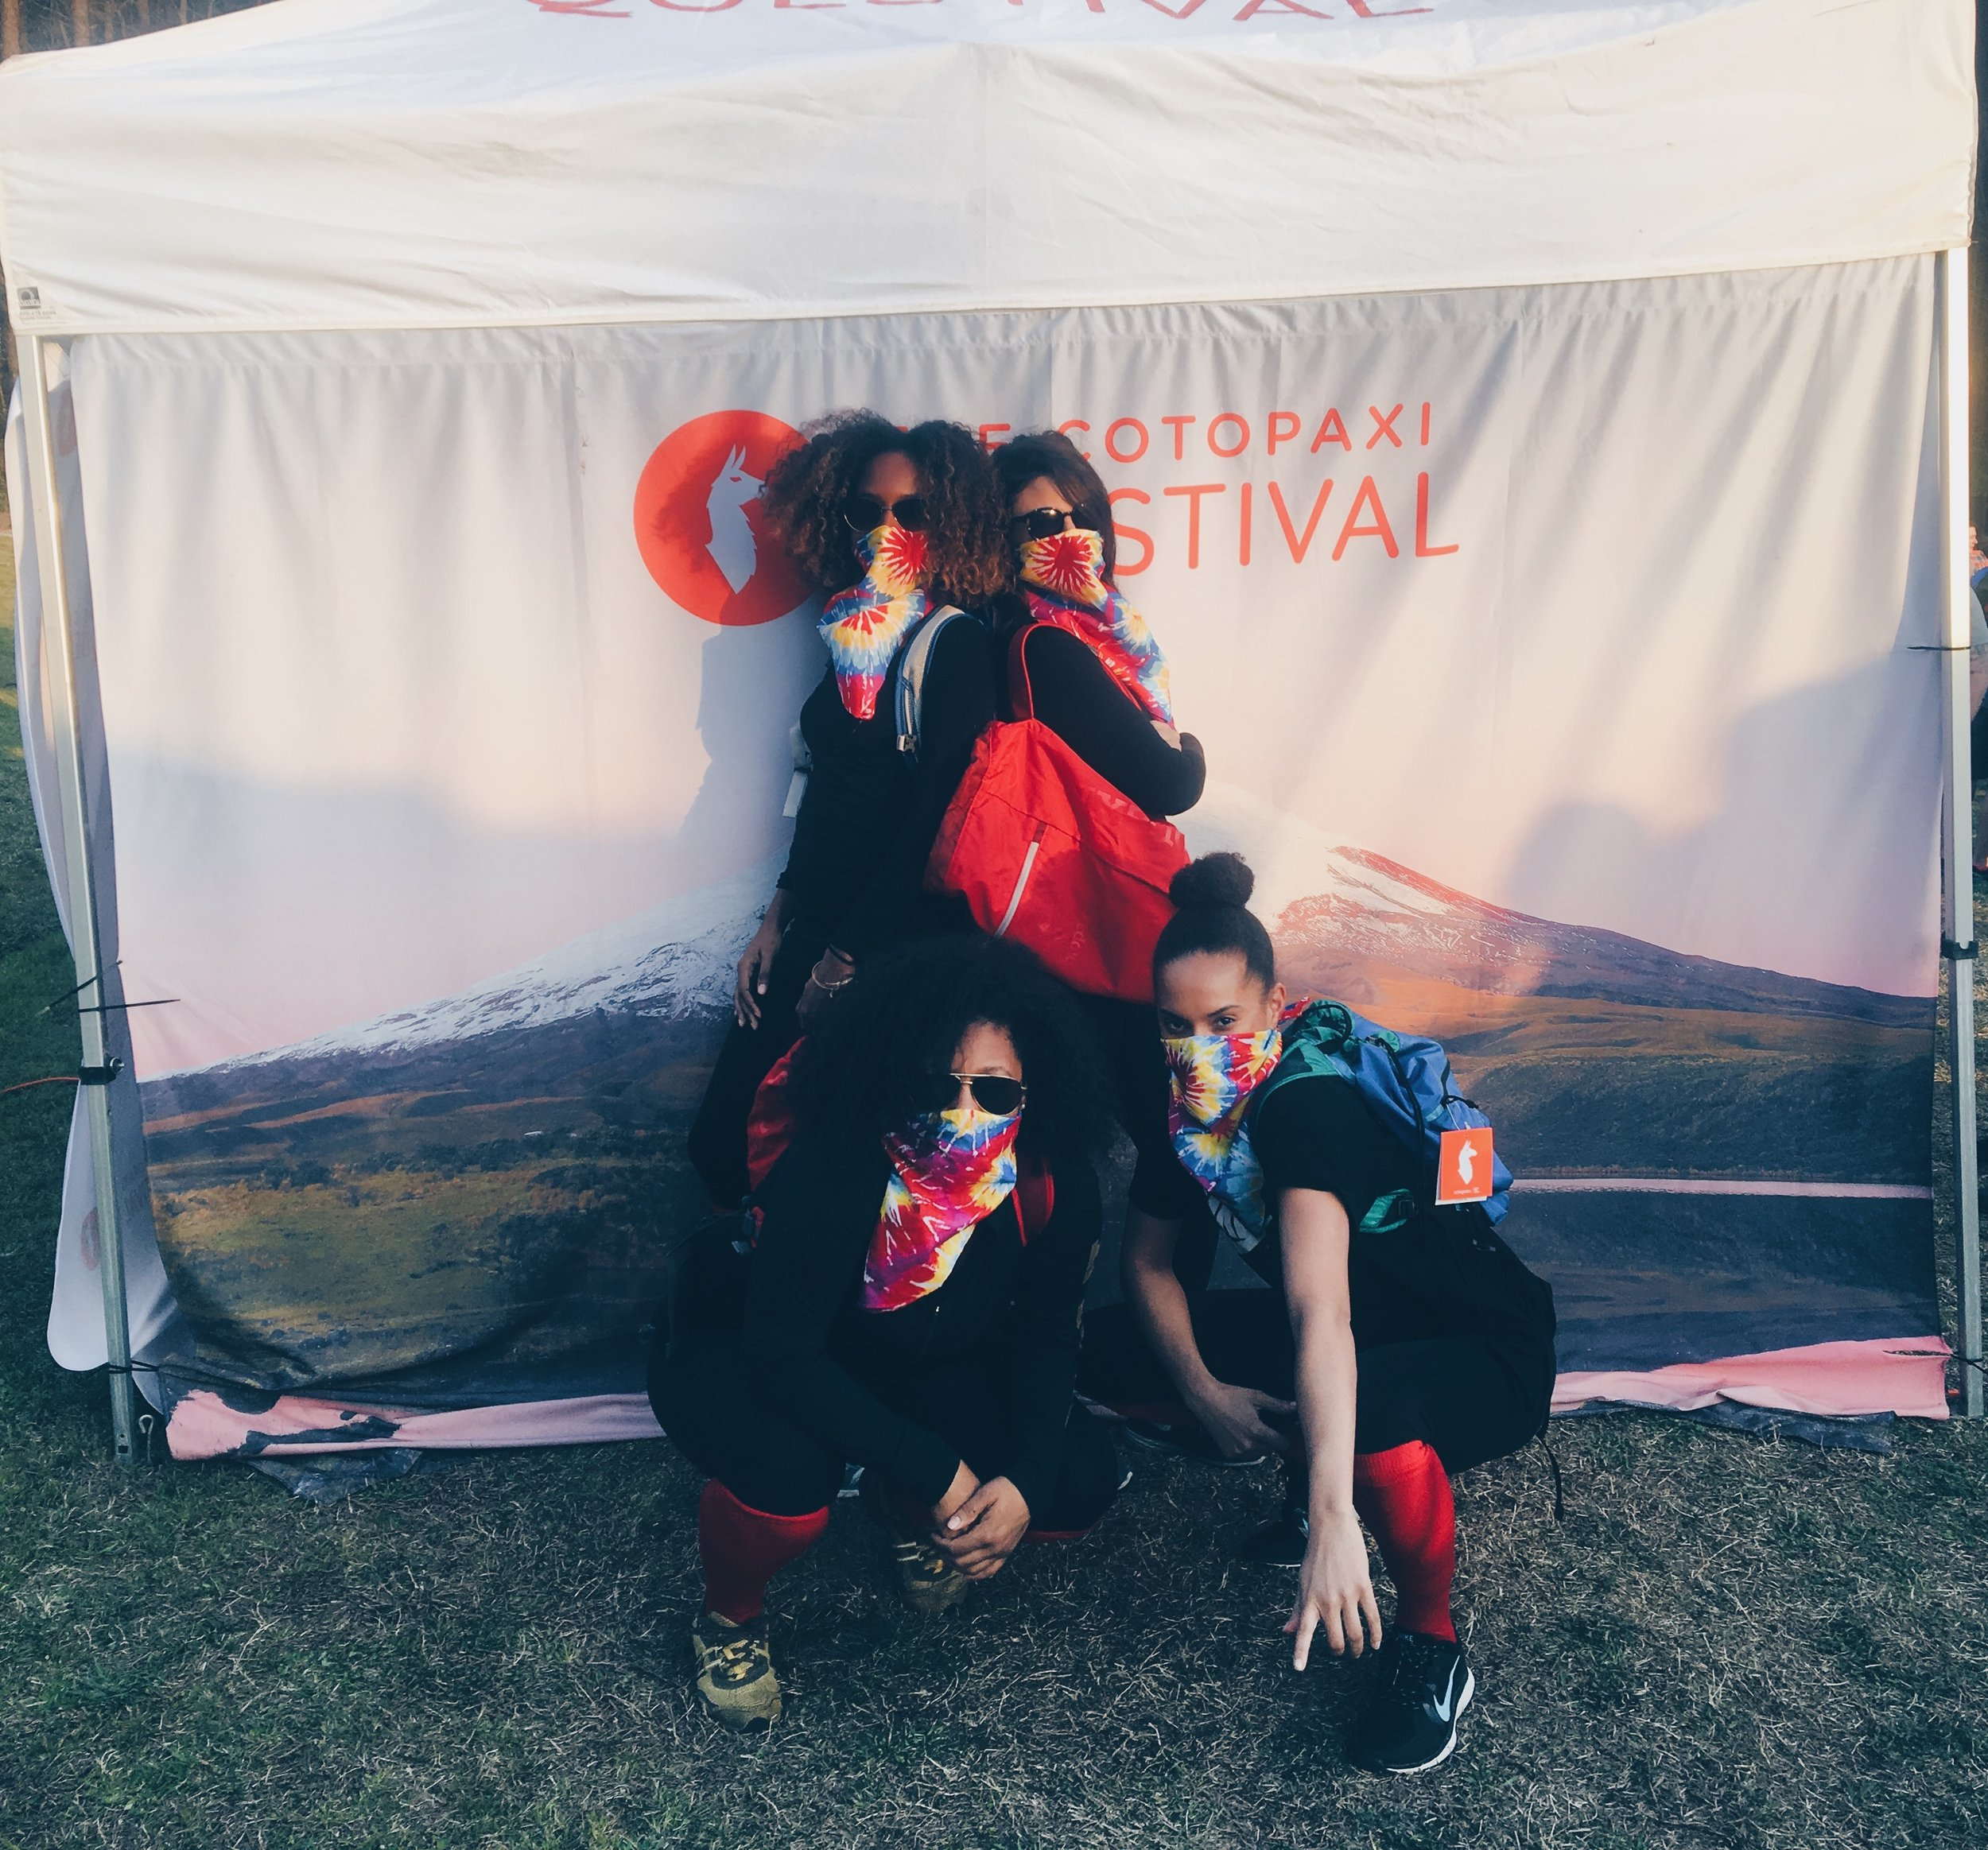 Questival 2017 in North Carolina